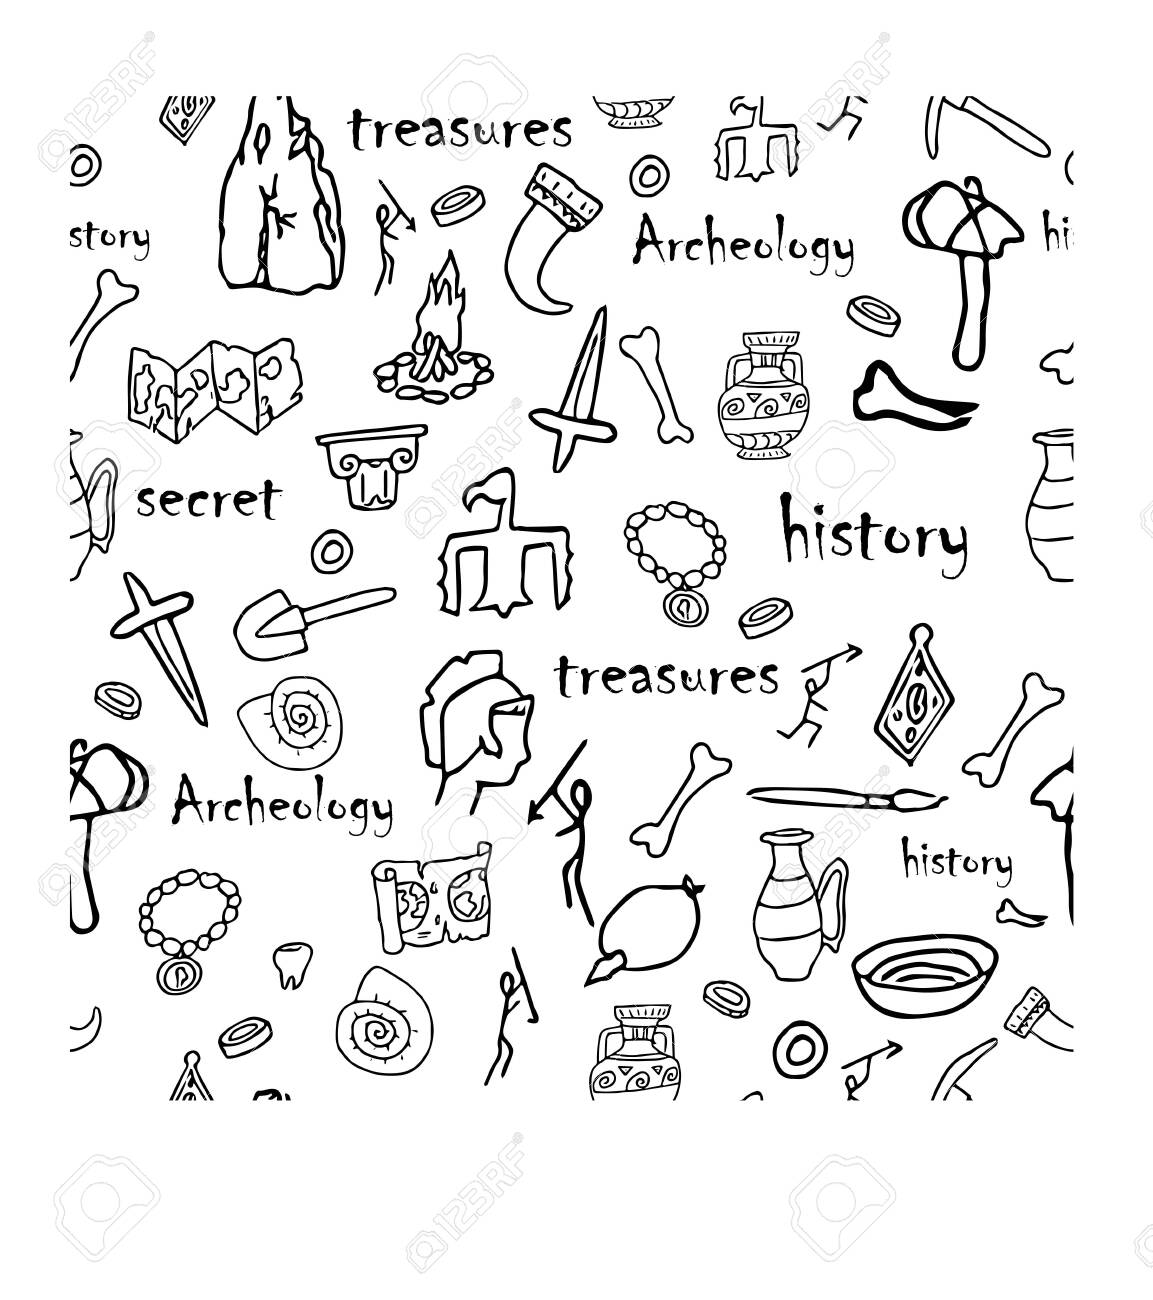 Doodle archeology, history seamless pattern in black and white colours stock vector illustration. Education, explore, research idea. Grunge hand drawn elements. - 147947328